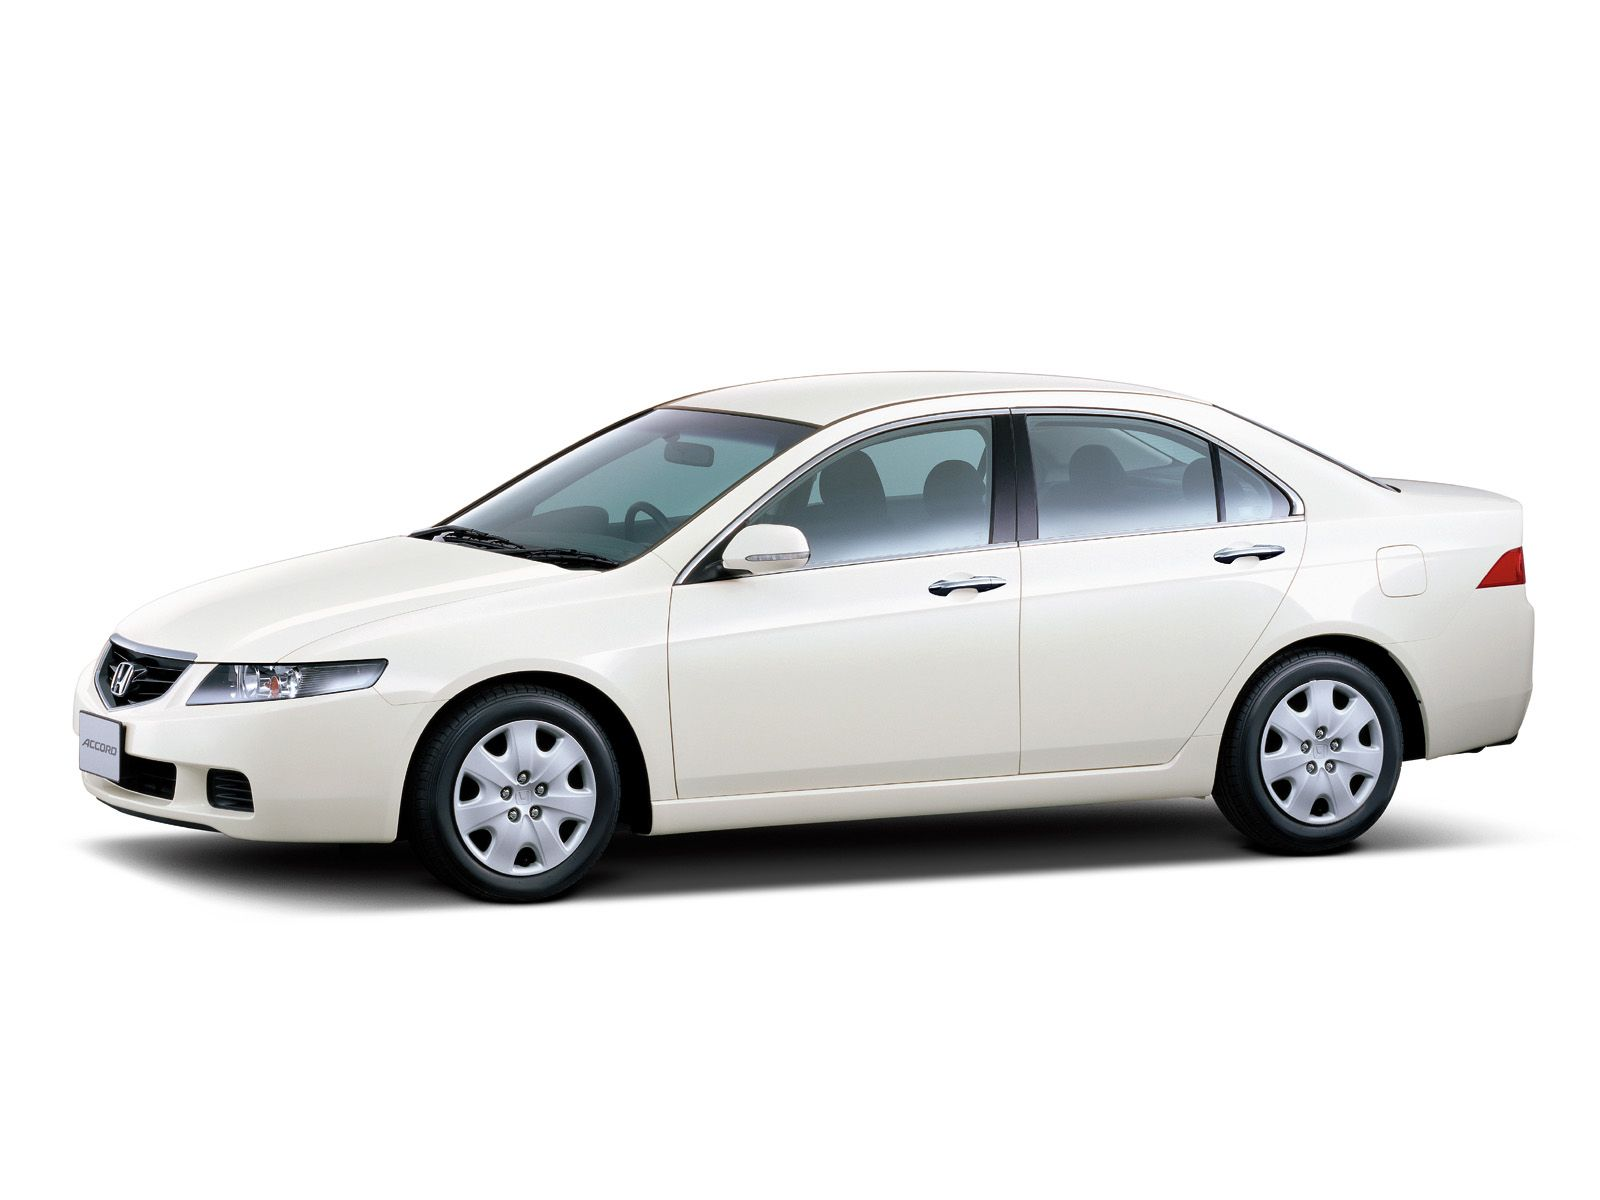 Honda Accord photo 2102